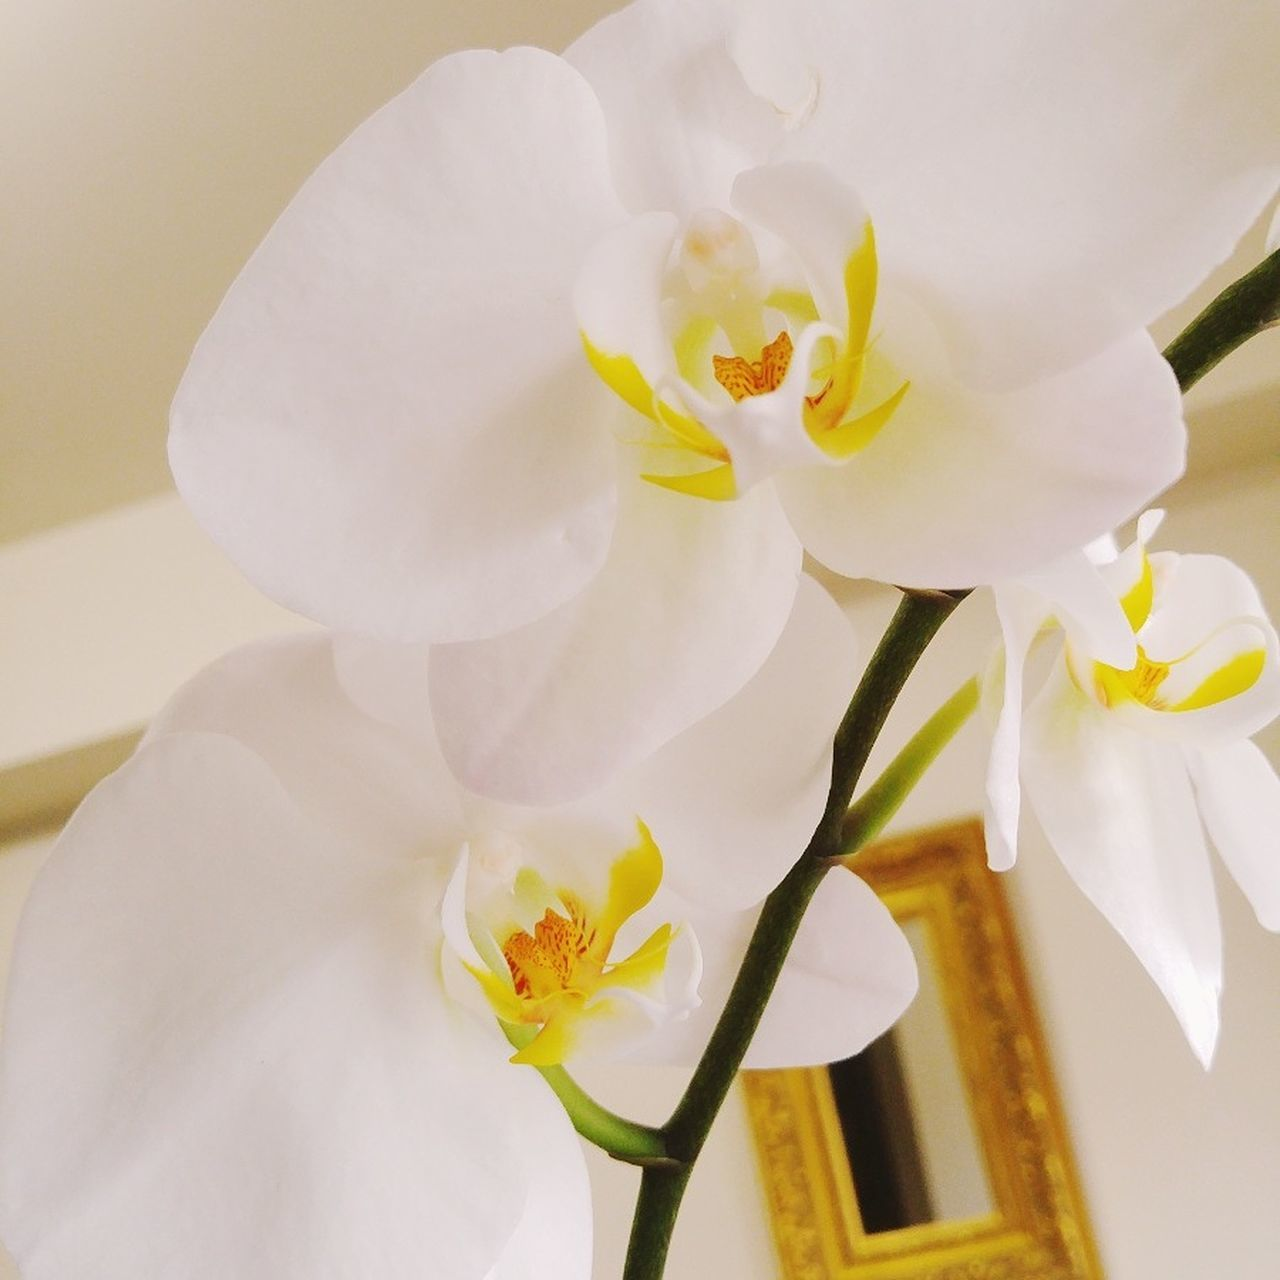 Flower Flower Head Petal Fragility Blossom Freshness Springtime Close-up Orchid Beauty In Nature Softness Nature Stamen Yellow Plant Growth No People Day Indoors  Bouquet Orchid Blossoms White Orchid